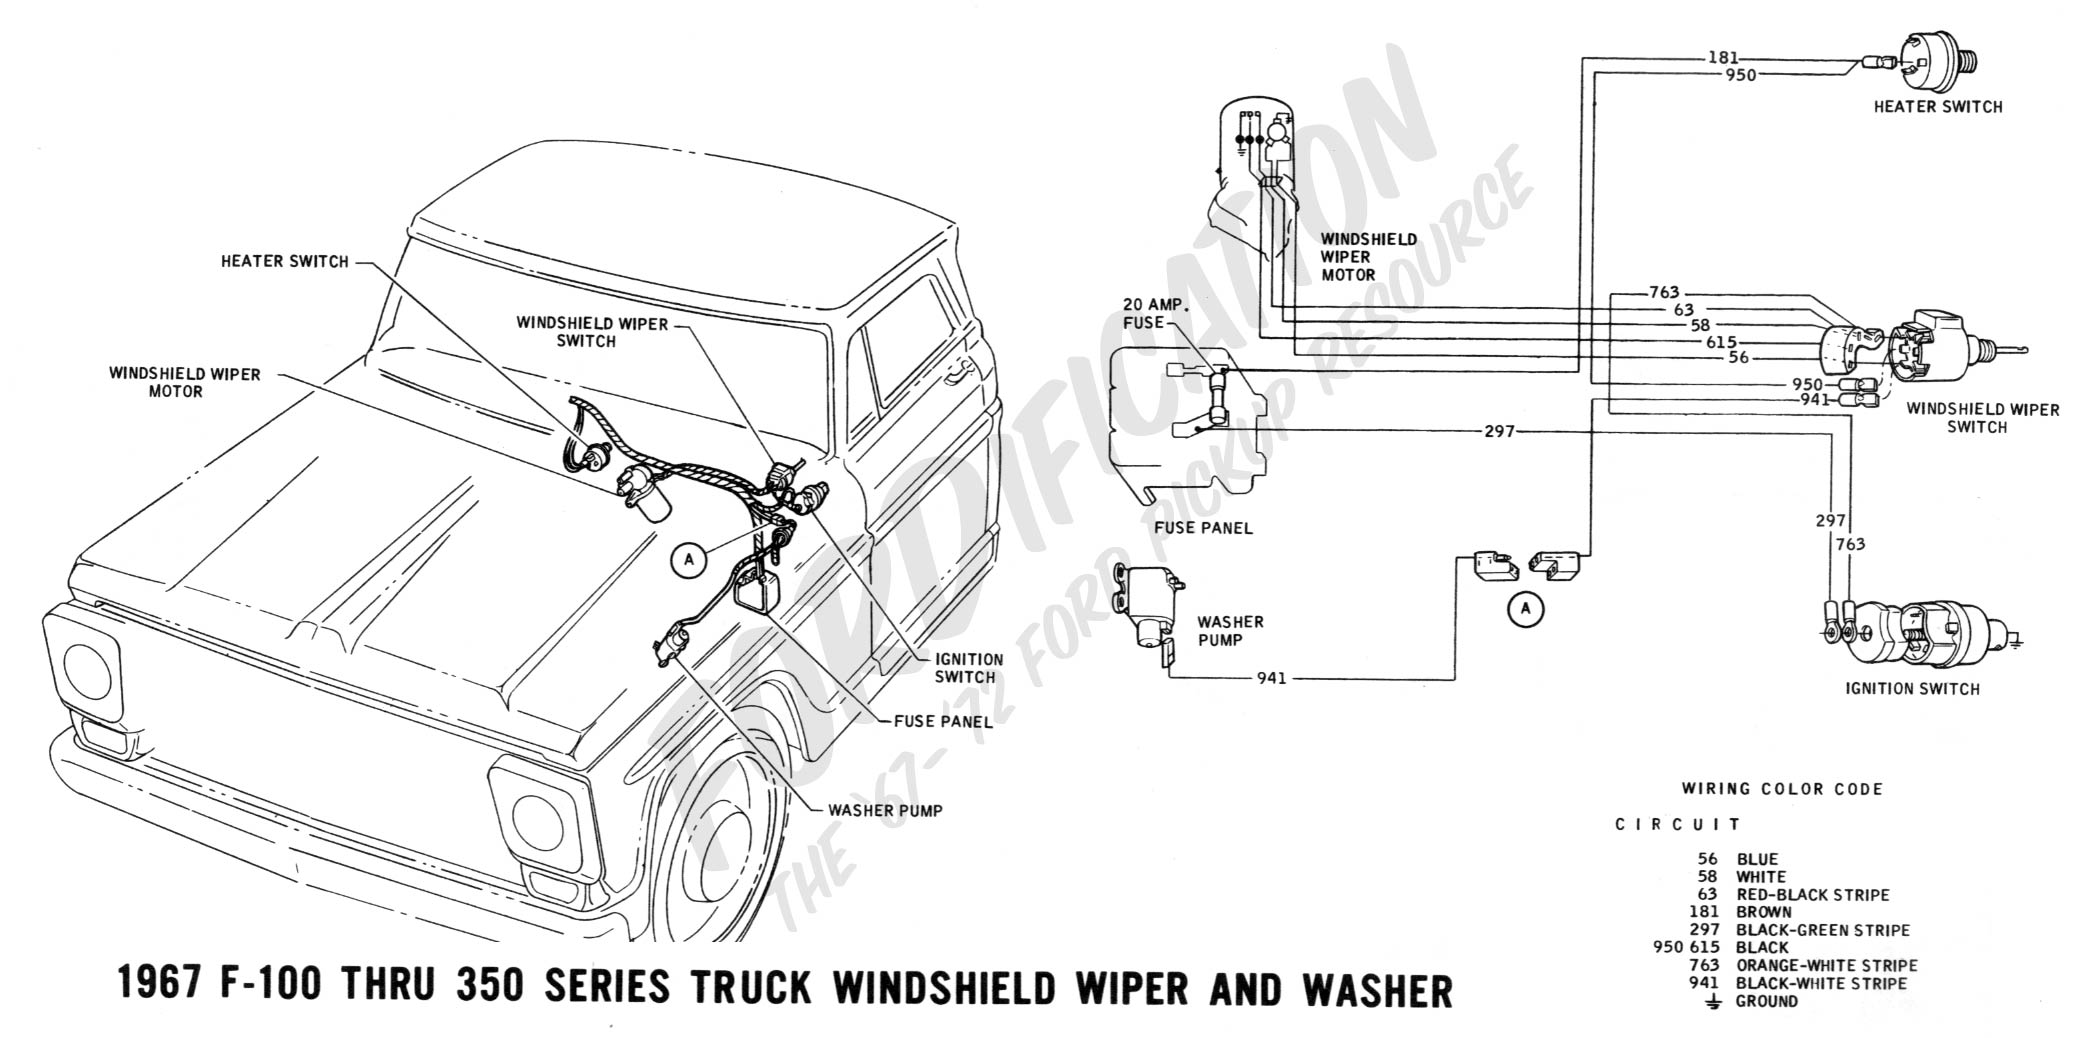 Ford Truck Technical Drawings And Schematics Section H Wiring Heat Tape In Series Free Download Diagrams Pictures 1967 F 100 Thru 350 Windshield Wiper Washer